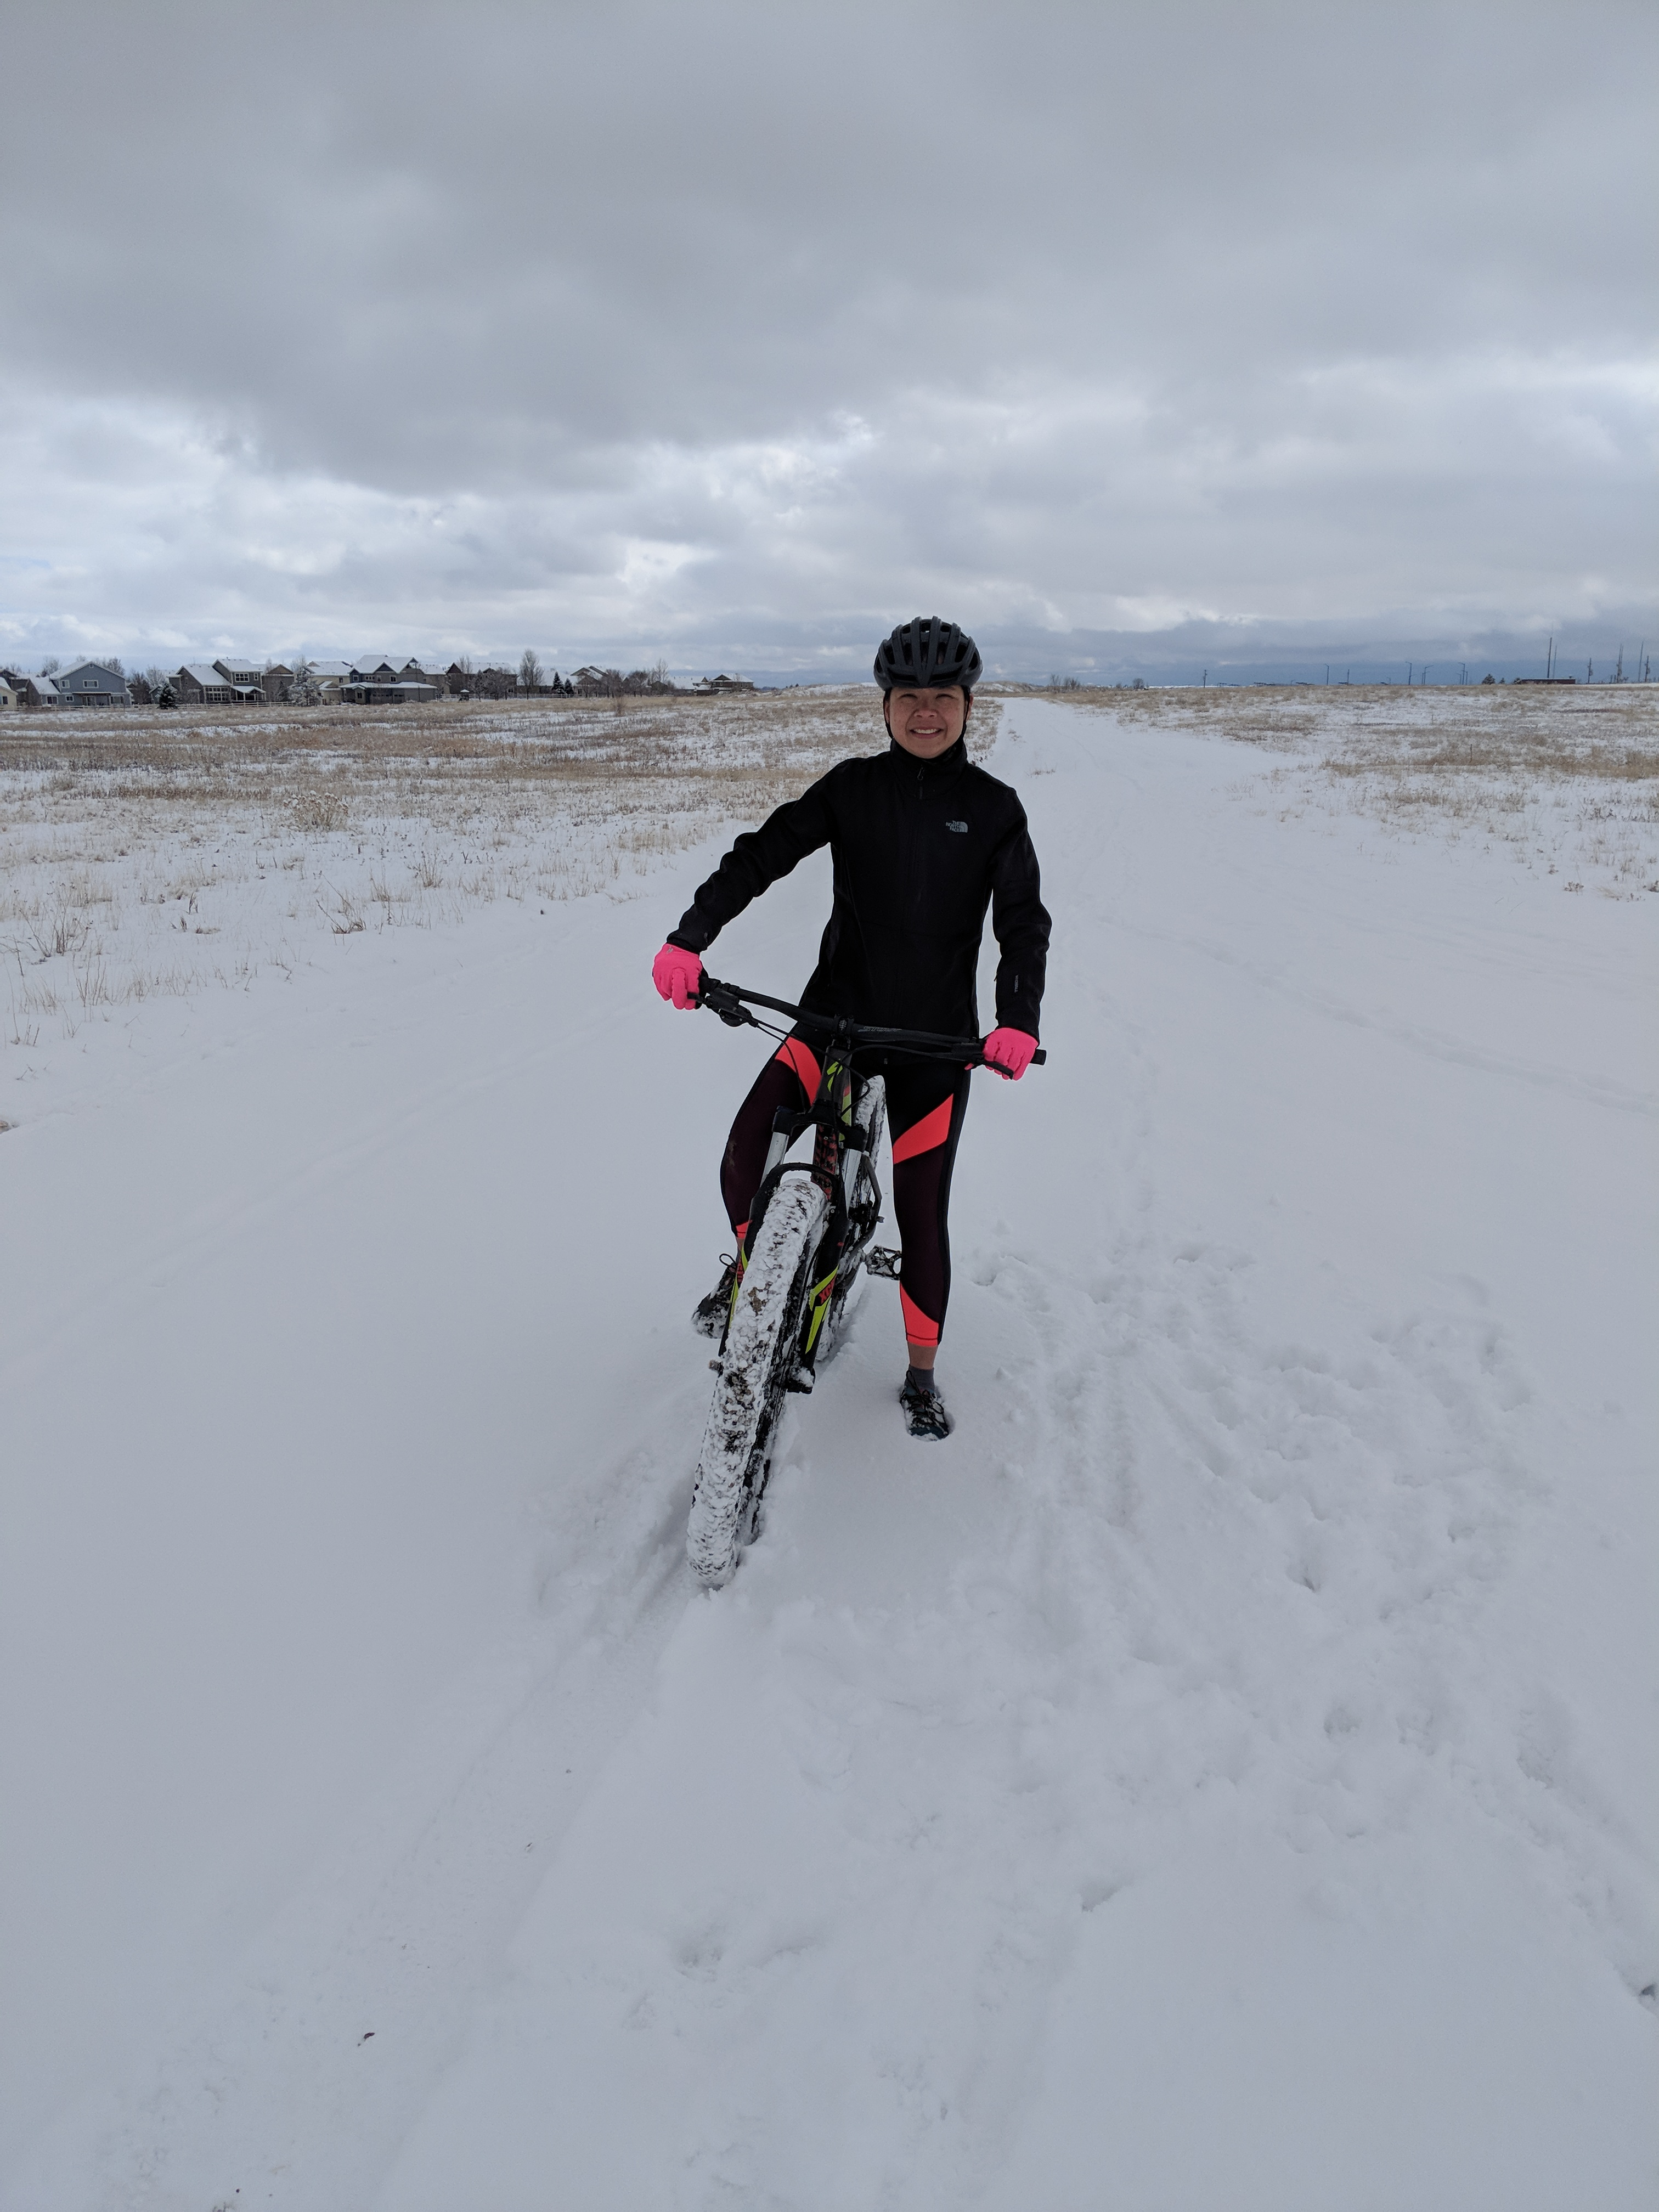 Sweaty person riding bike in the snow.